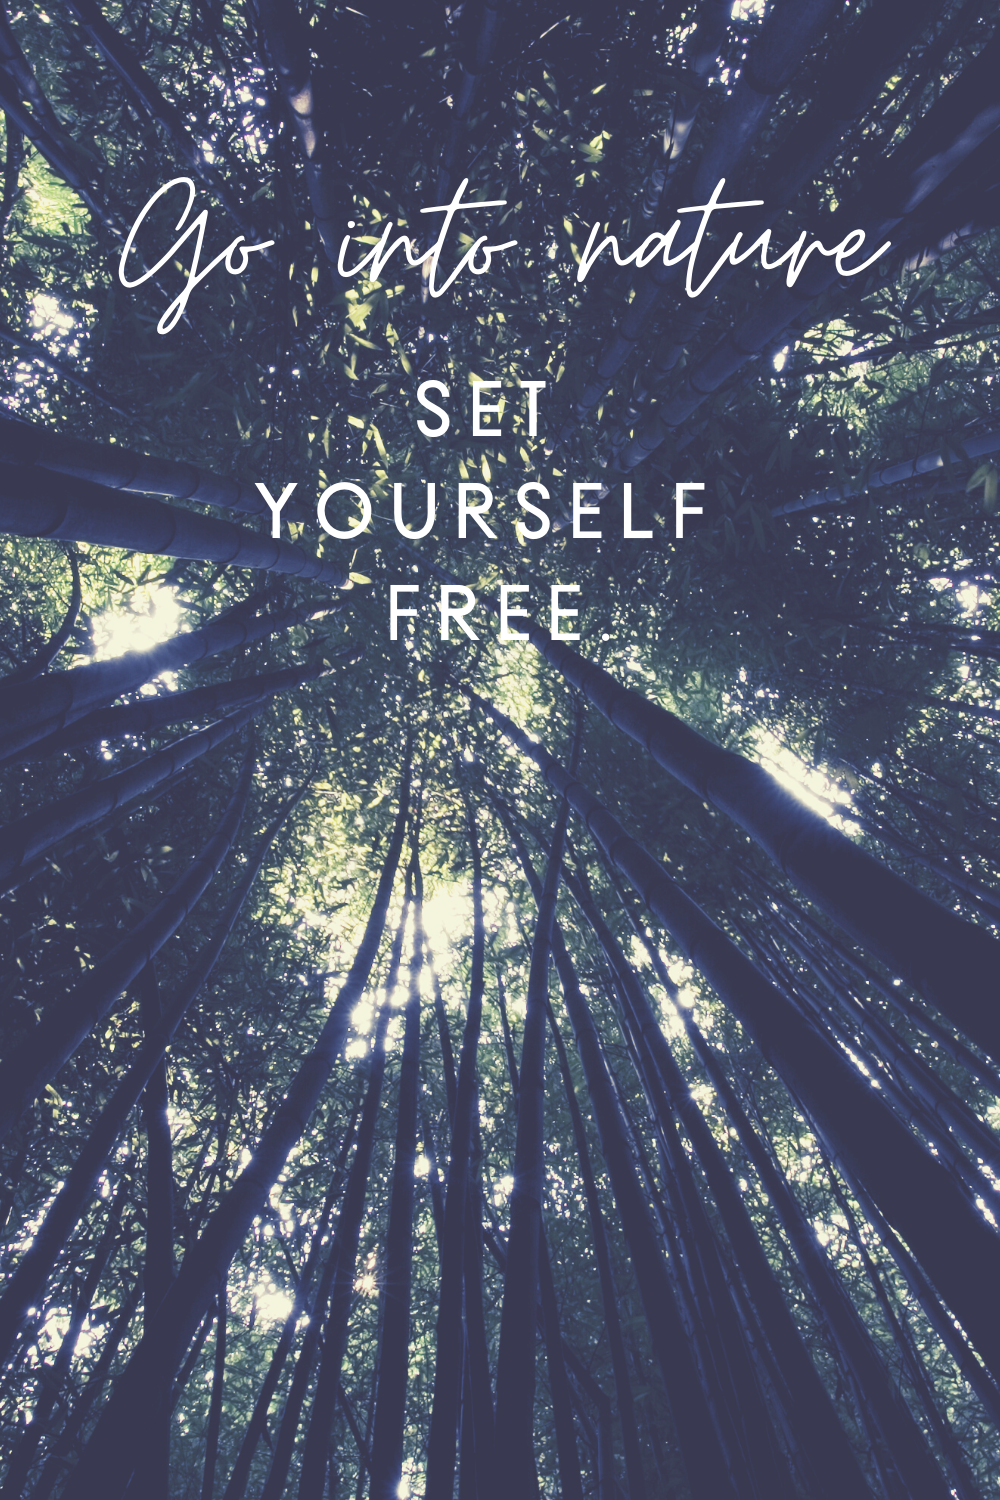 Go Into Nature. Let nature guide, soothe and heal. Let go and breathe it in. Set yourself Free. #nature #keepitsimple #dailyreminders #healingenergy #setyourselffree #healing #reminder #selfcare #selflove #timeout #breathe